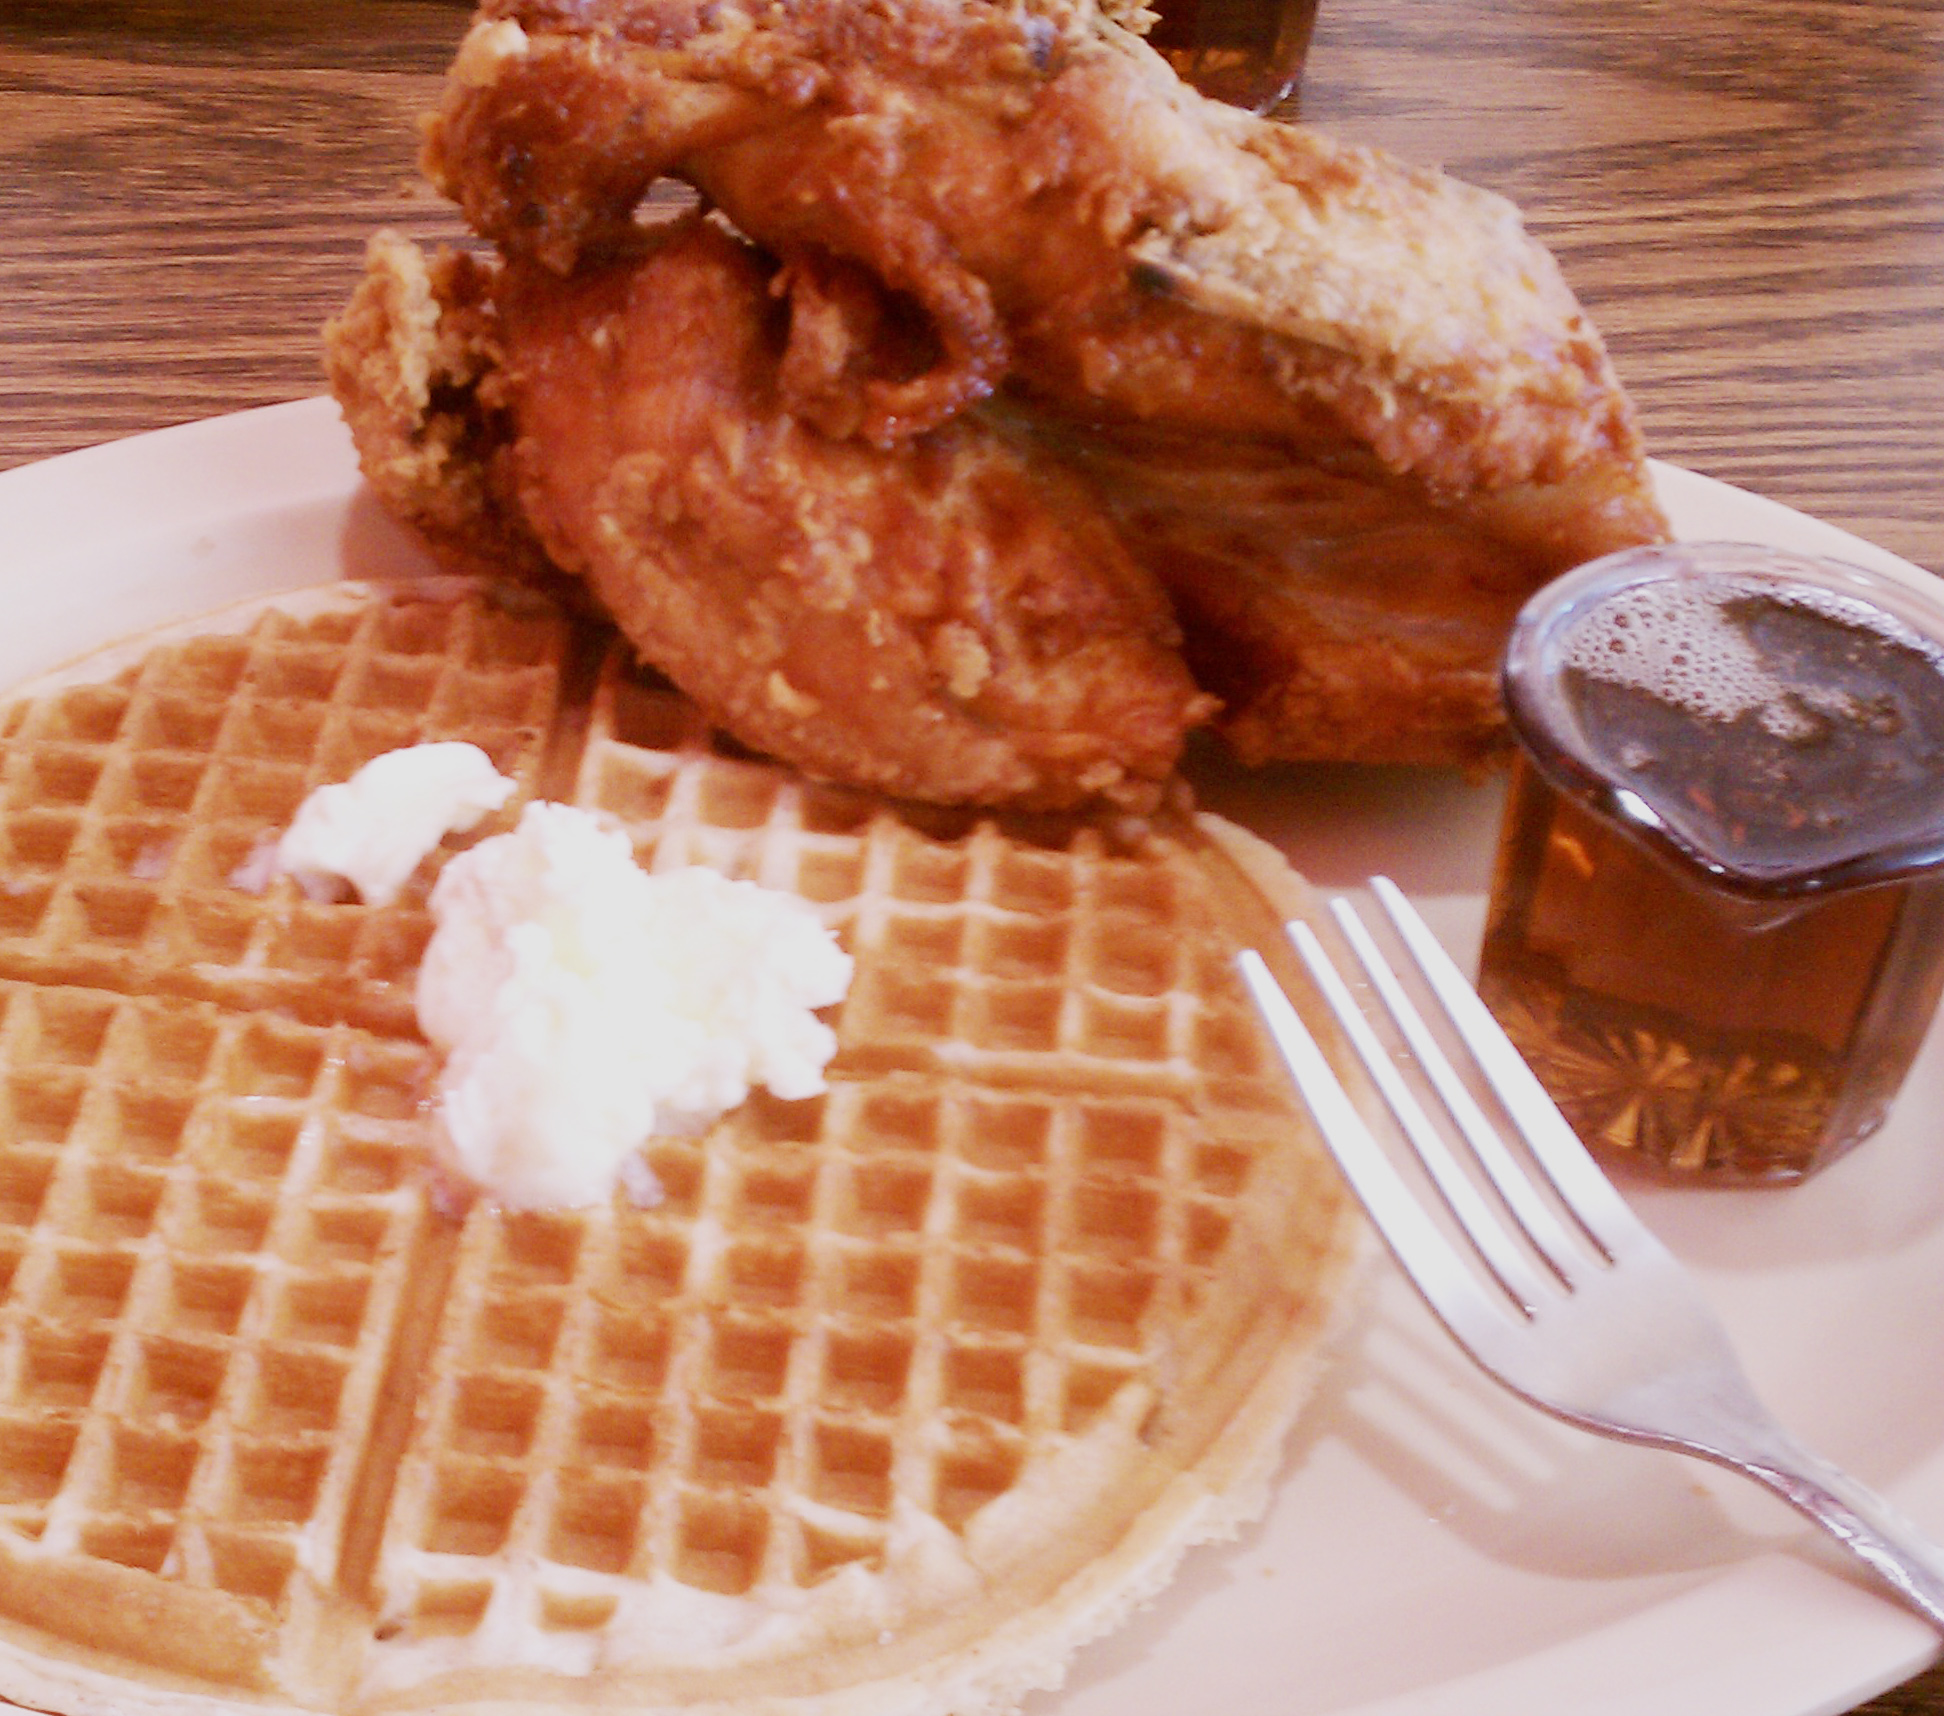 Dear Seattle Restaurants: A Chicken and Waffles Challenge